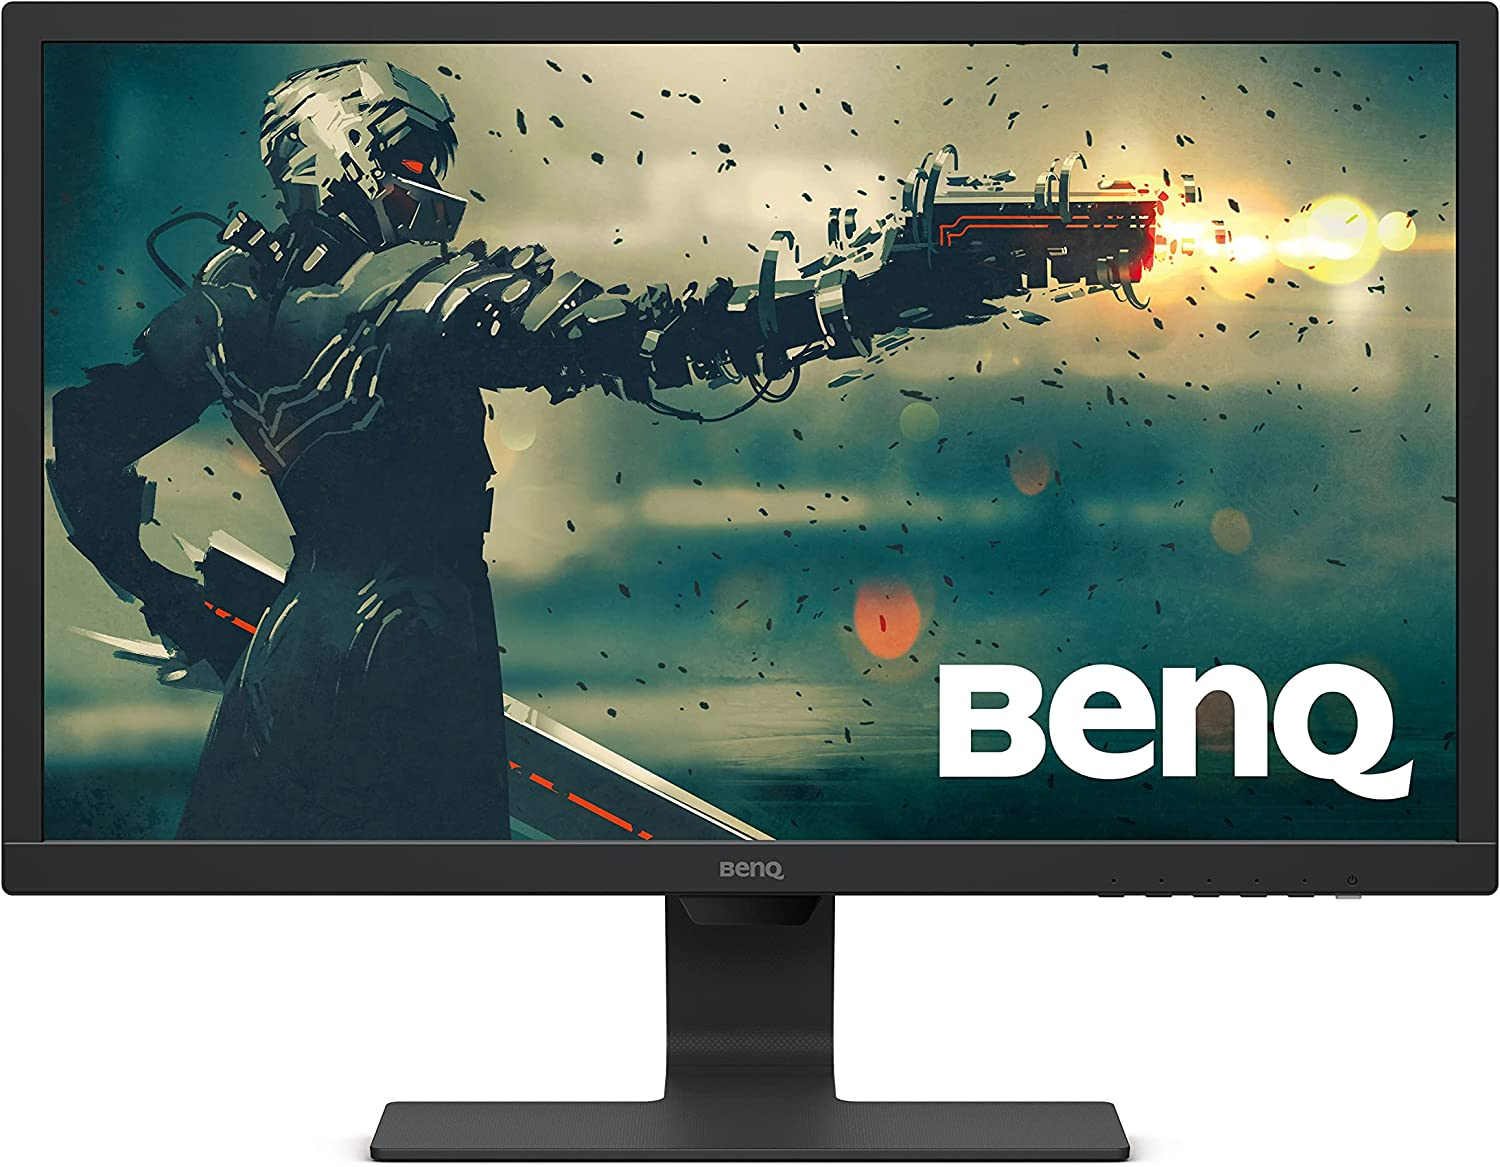 BenQ 24 Inch 1080P Monitor   75 Hz for Gaming   Proprietary Eye-Care Tech  Adaptive Brightness for Image Quality   GL2480,Black